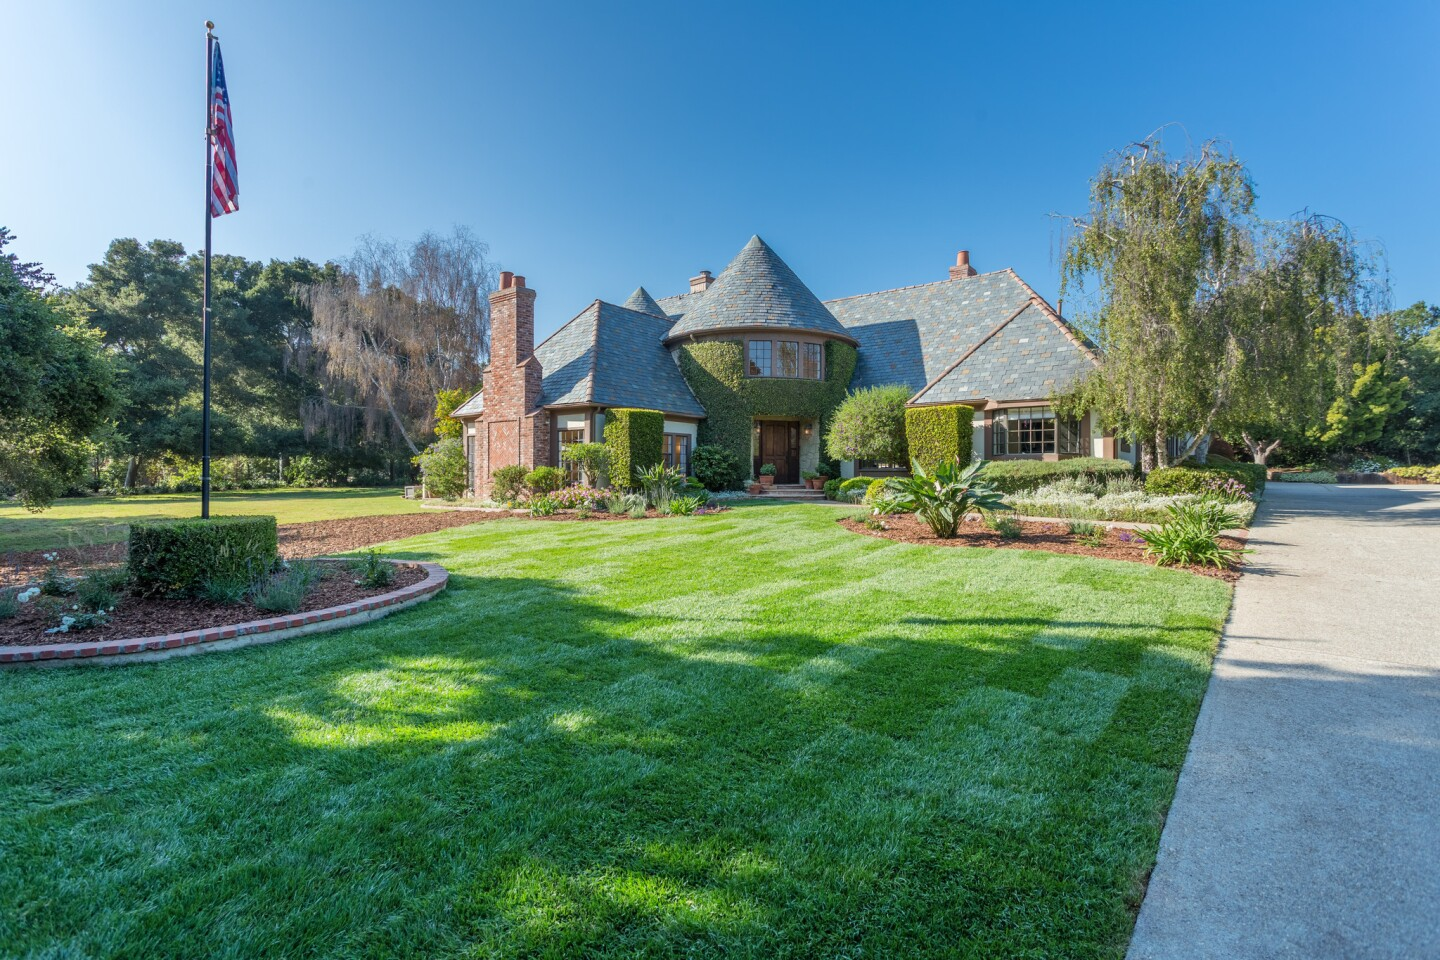 Home of the Day: Storybook romance in Santa Barbara's Hope Ranch